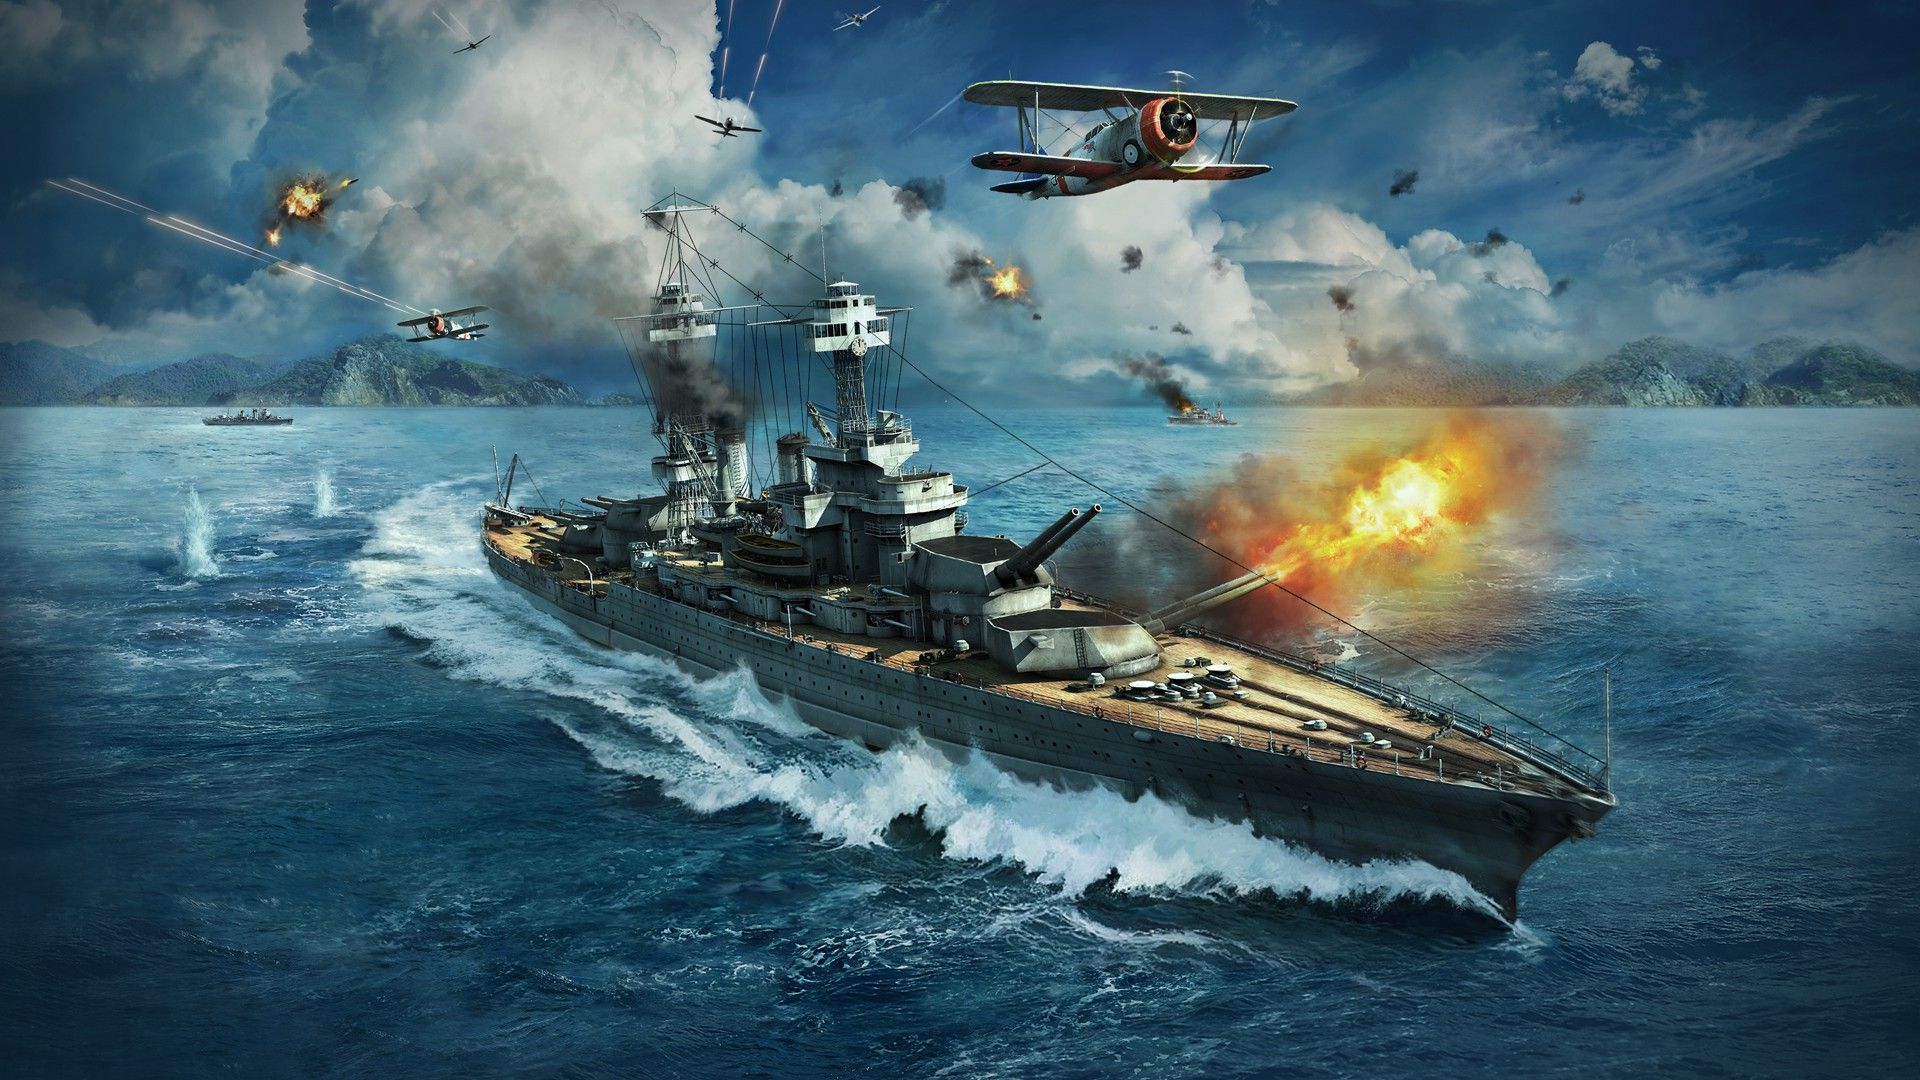 World Of Warships Wallpapers High Quality | Download Free